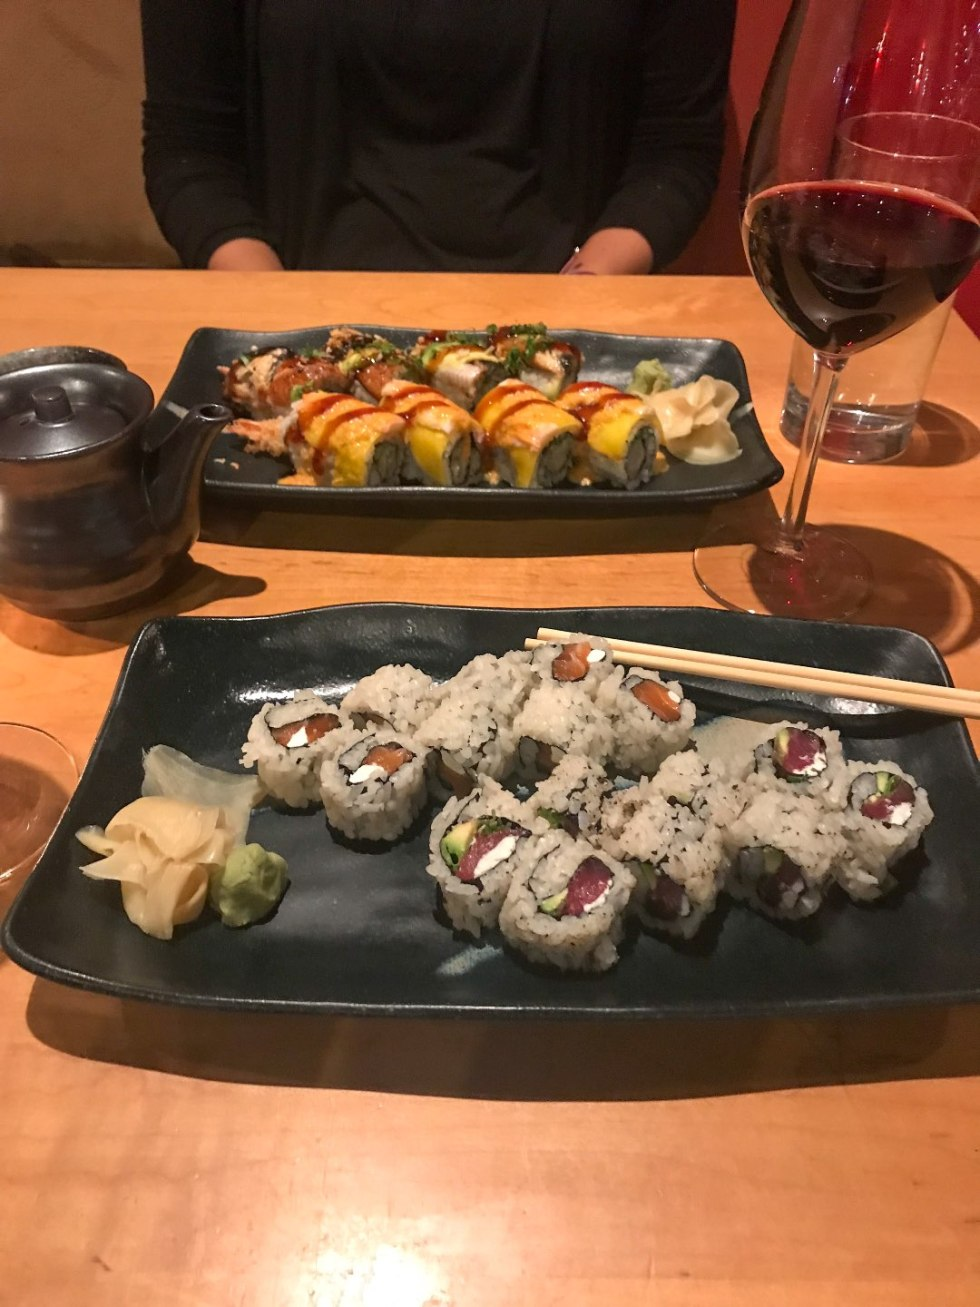 Best Places to Have Sushi in Raleigh - I'm Fixin' To - @mbg0112